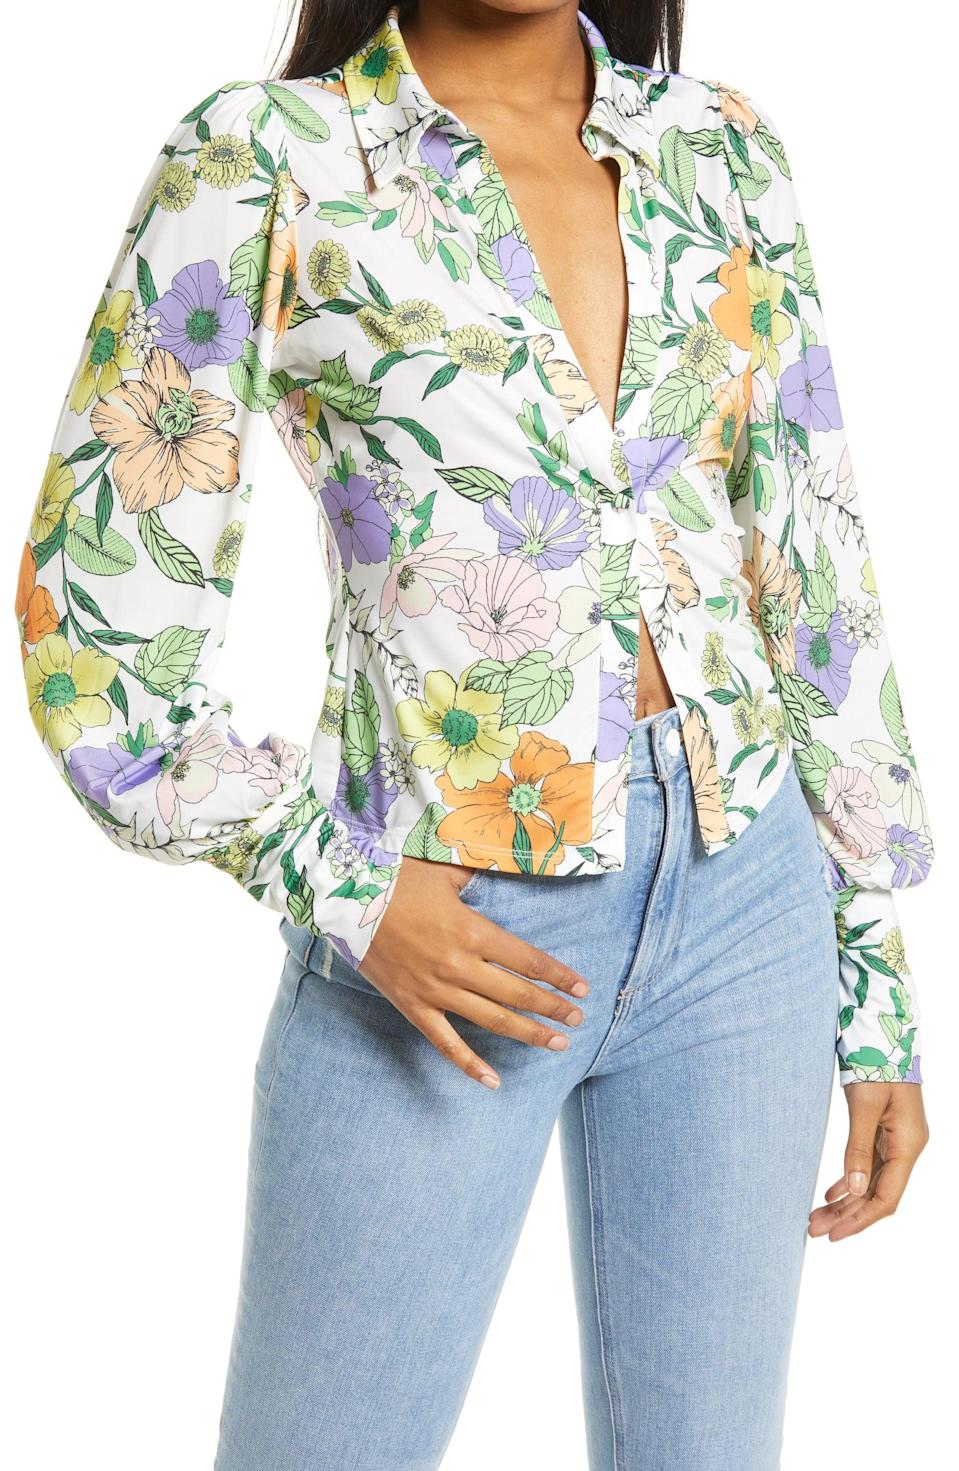 <p>This <span>AFRM Zayne Tie Dye Print Blouse</span> ($58) is so visually striking, you will attract tons of compliments when wearing it, no doubt!</p>